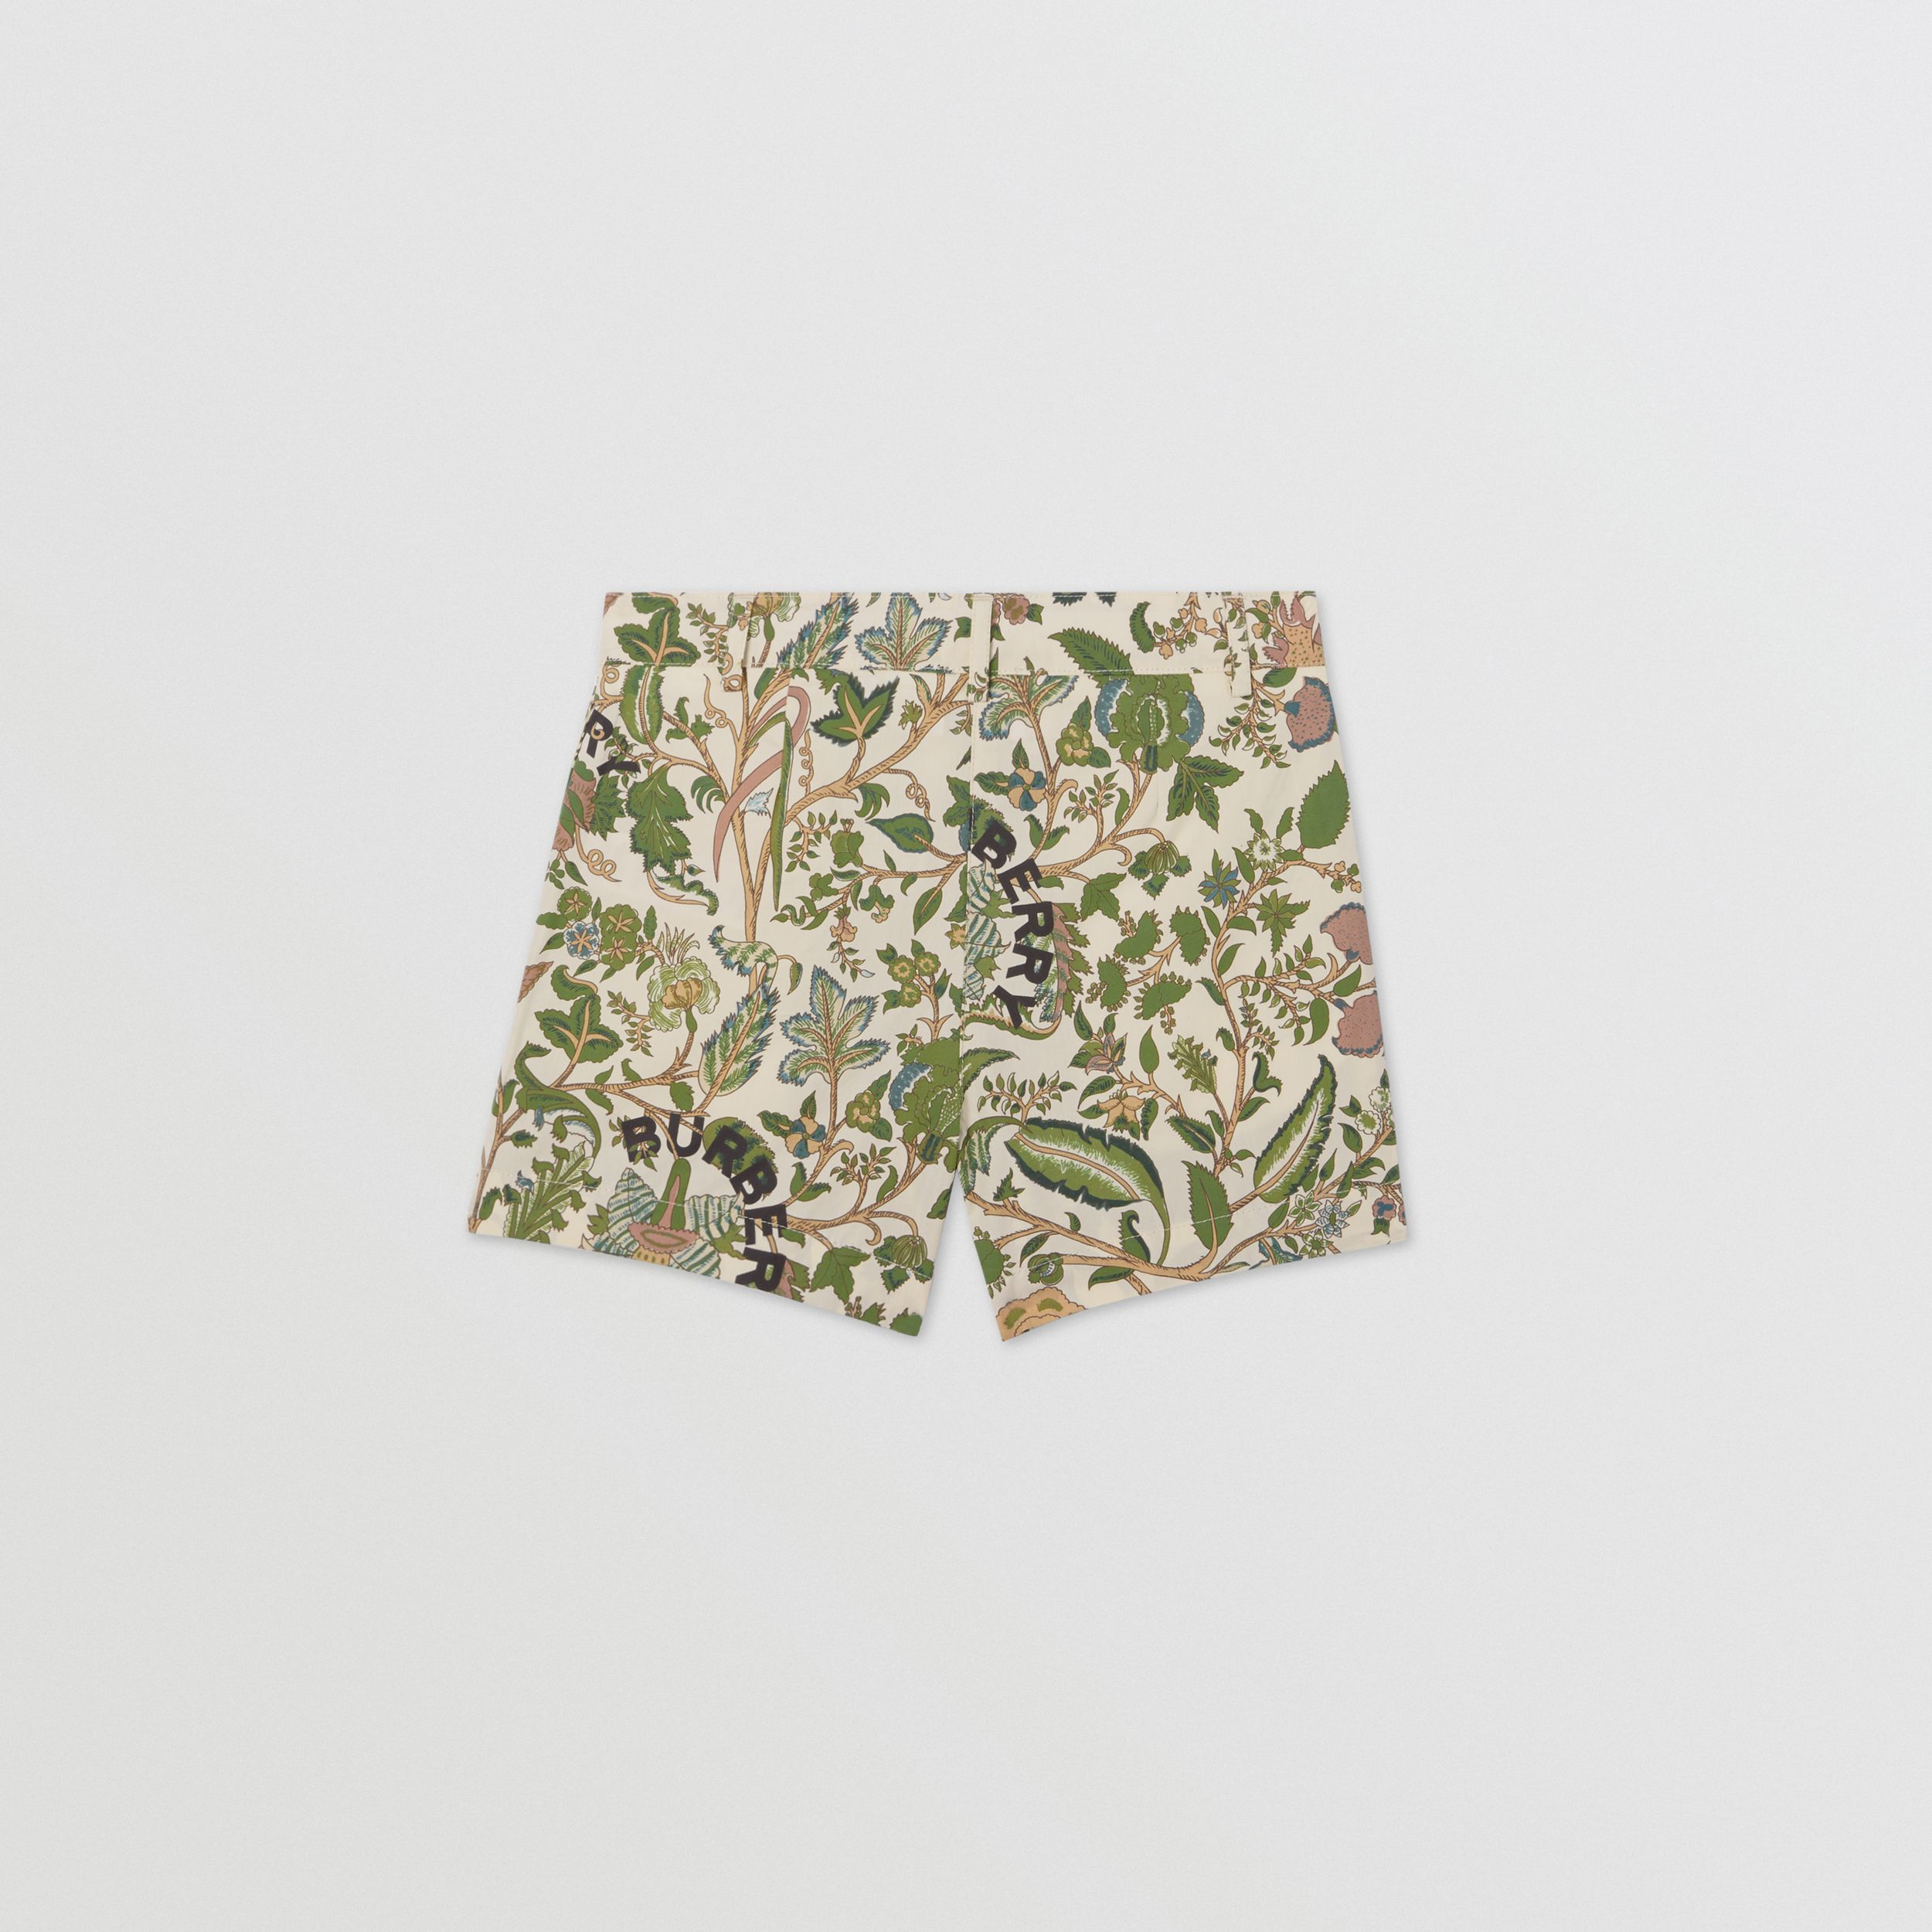 Botanical Print Cotton Tailored Shorts in Olive | Burberry Hong Kong S.A.R - 4